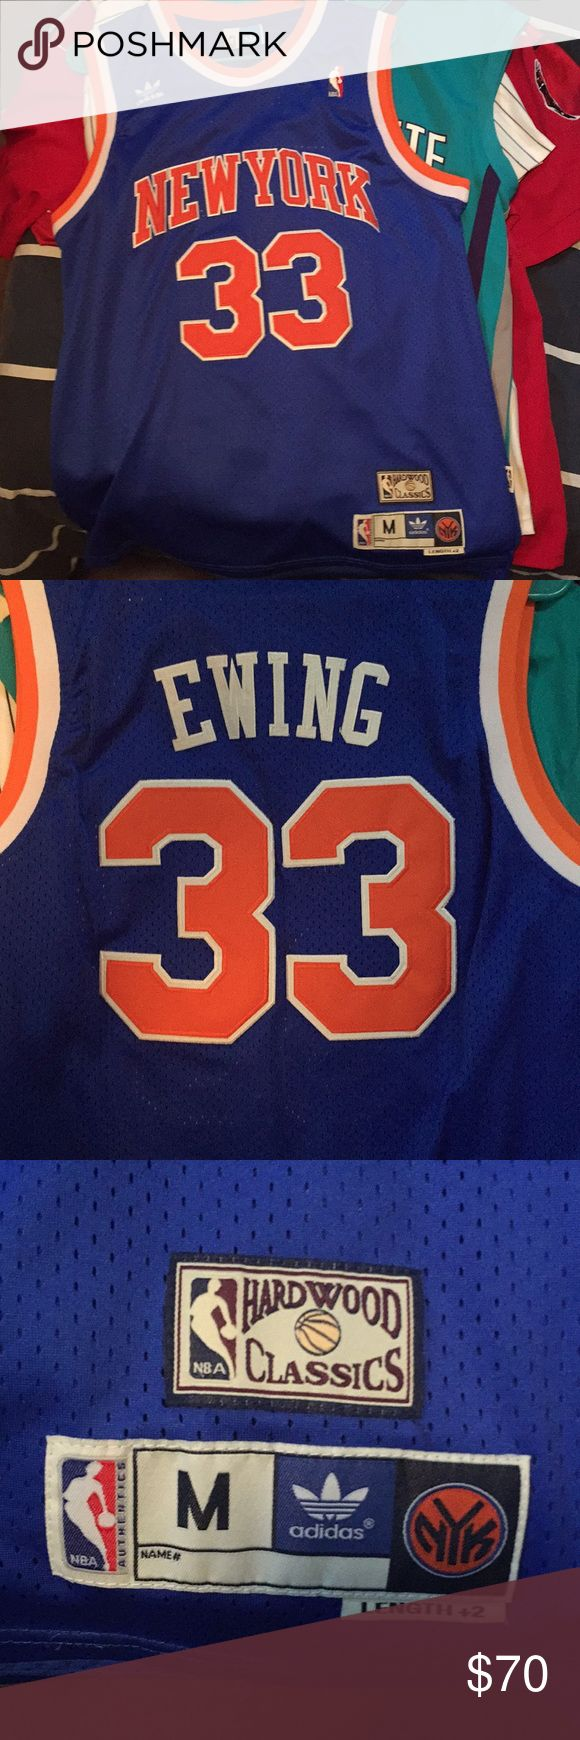 Adidas Patrick Ewing jersey Size medium. Stitched. Patrick Ewing jersey. No flaws, good as new! adidas Shirts Tank Tops